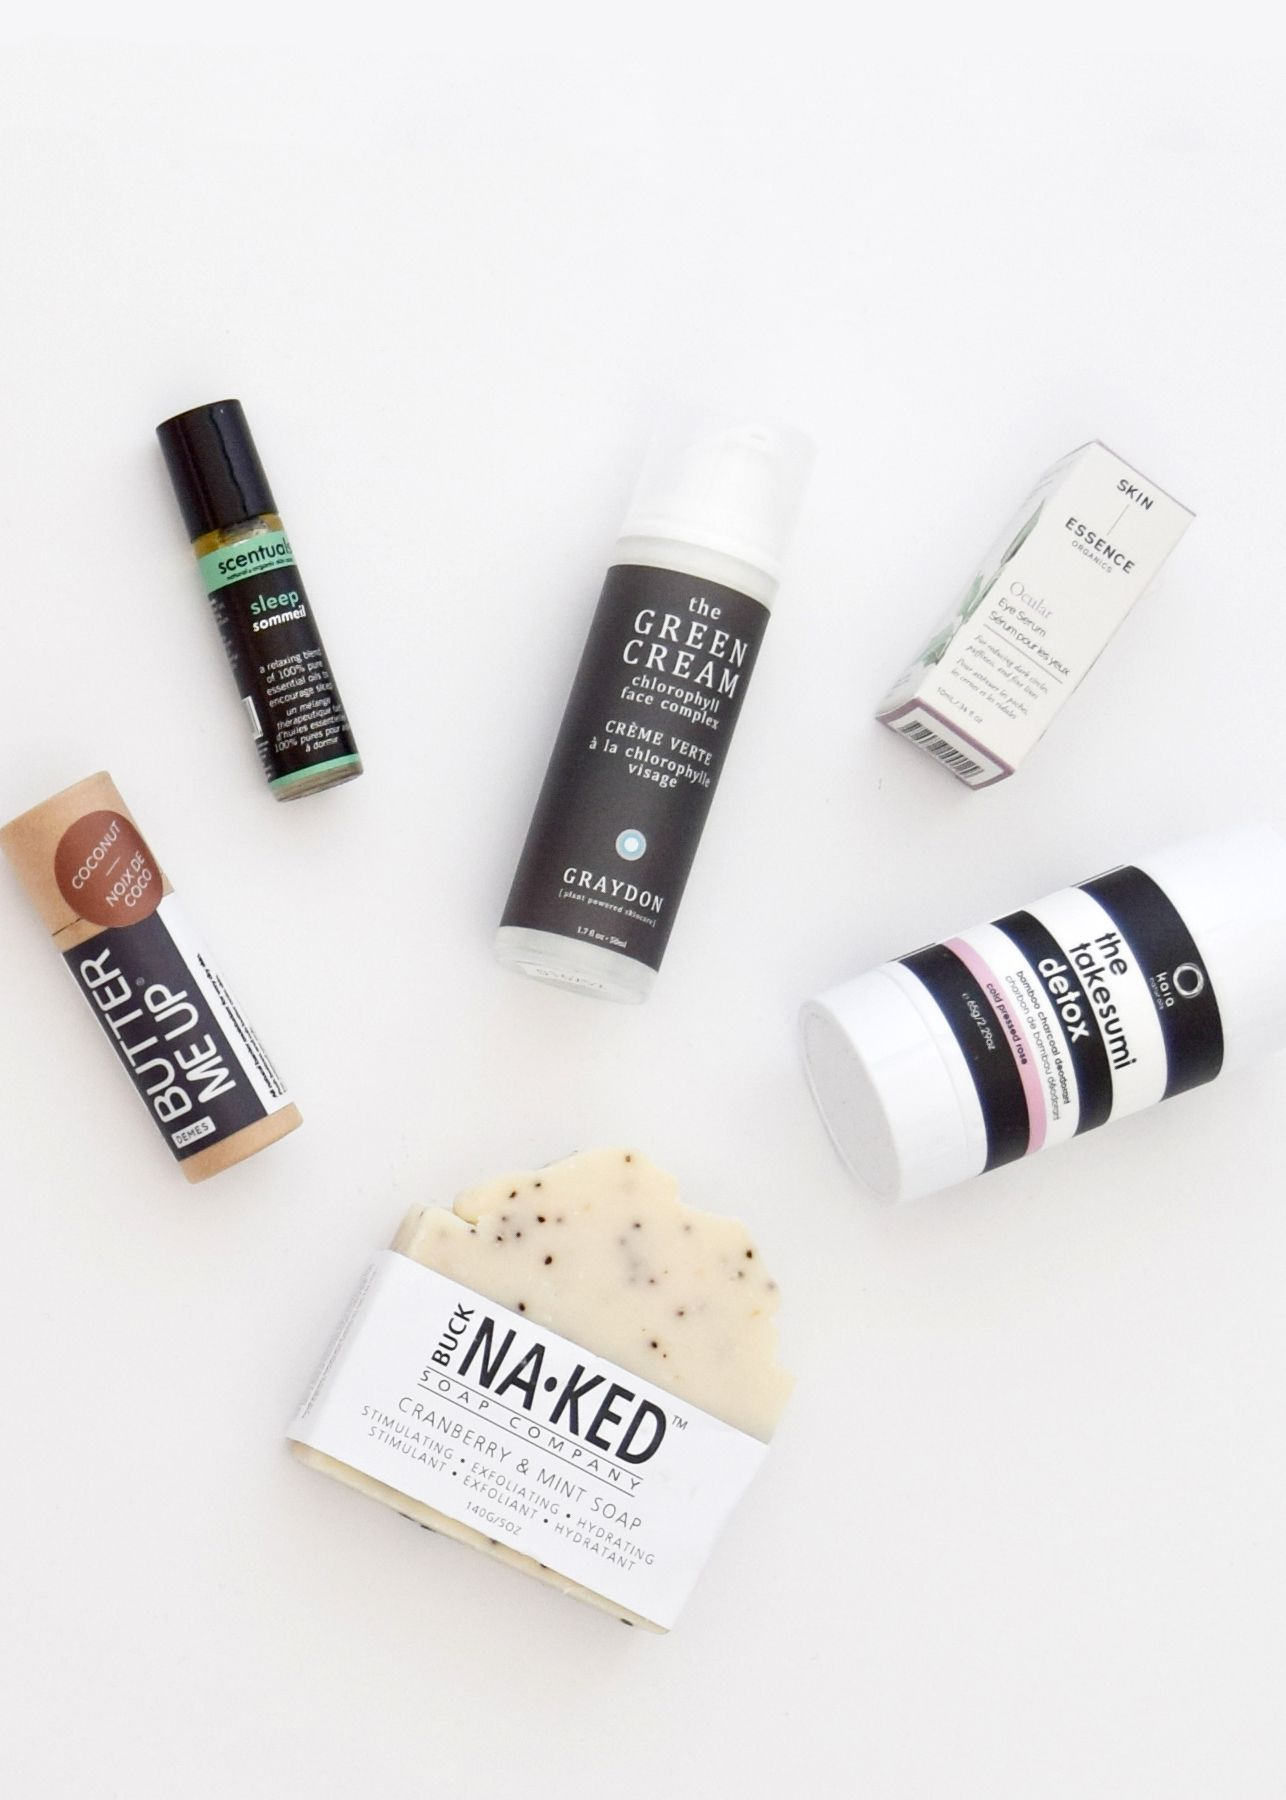 Shop for natural, vegan and crueltyfree beauty products